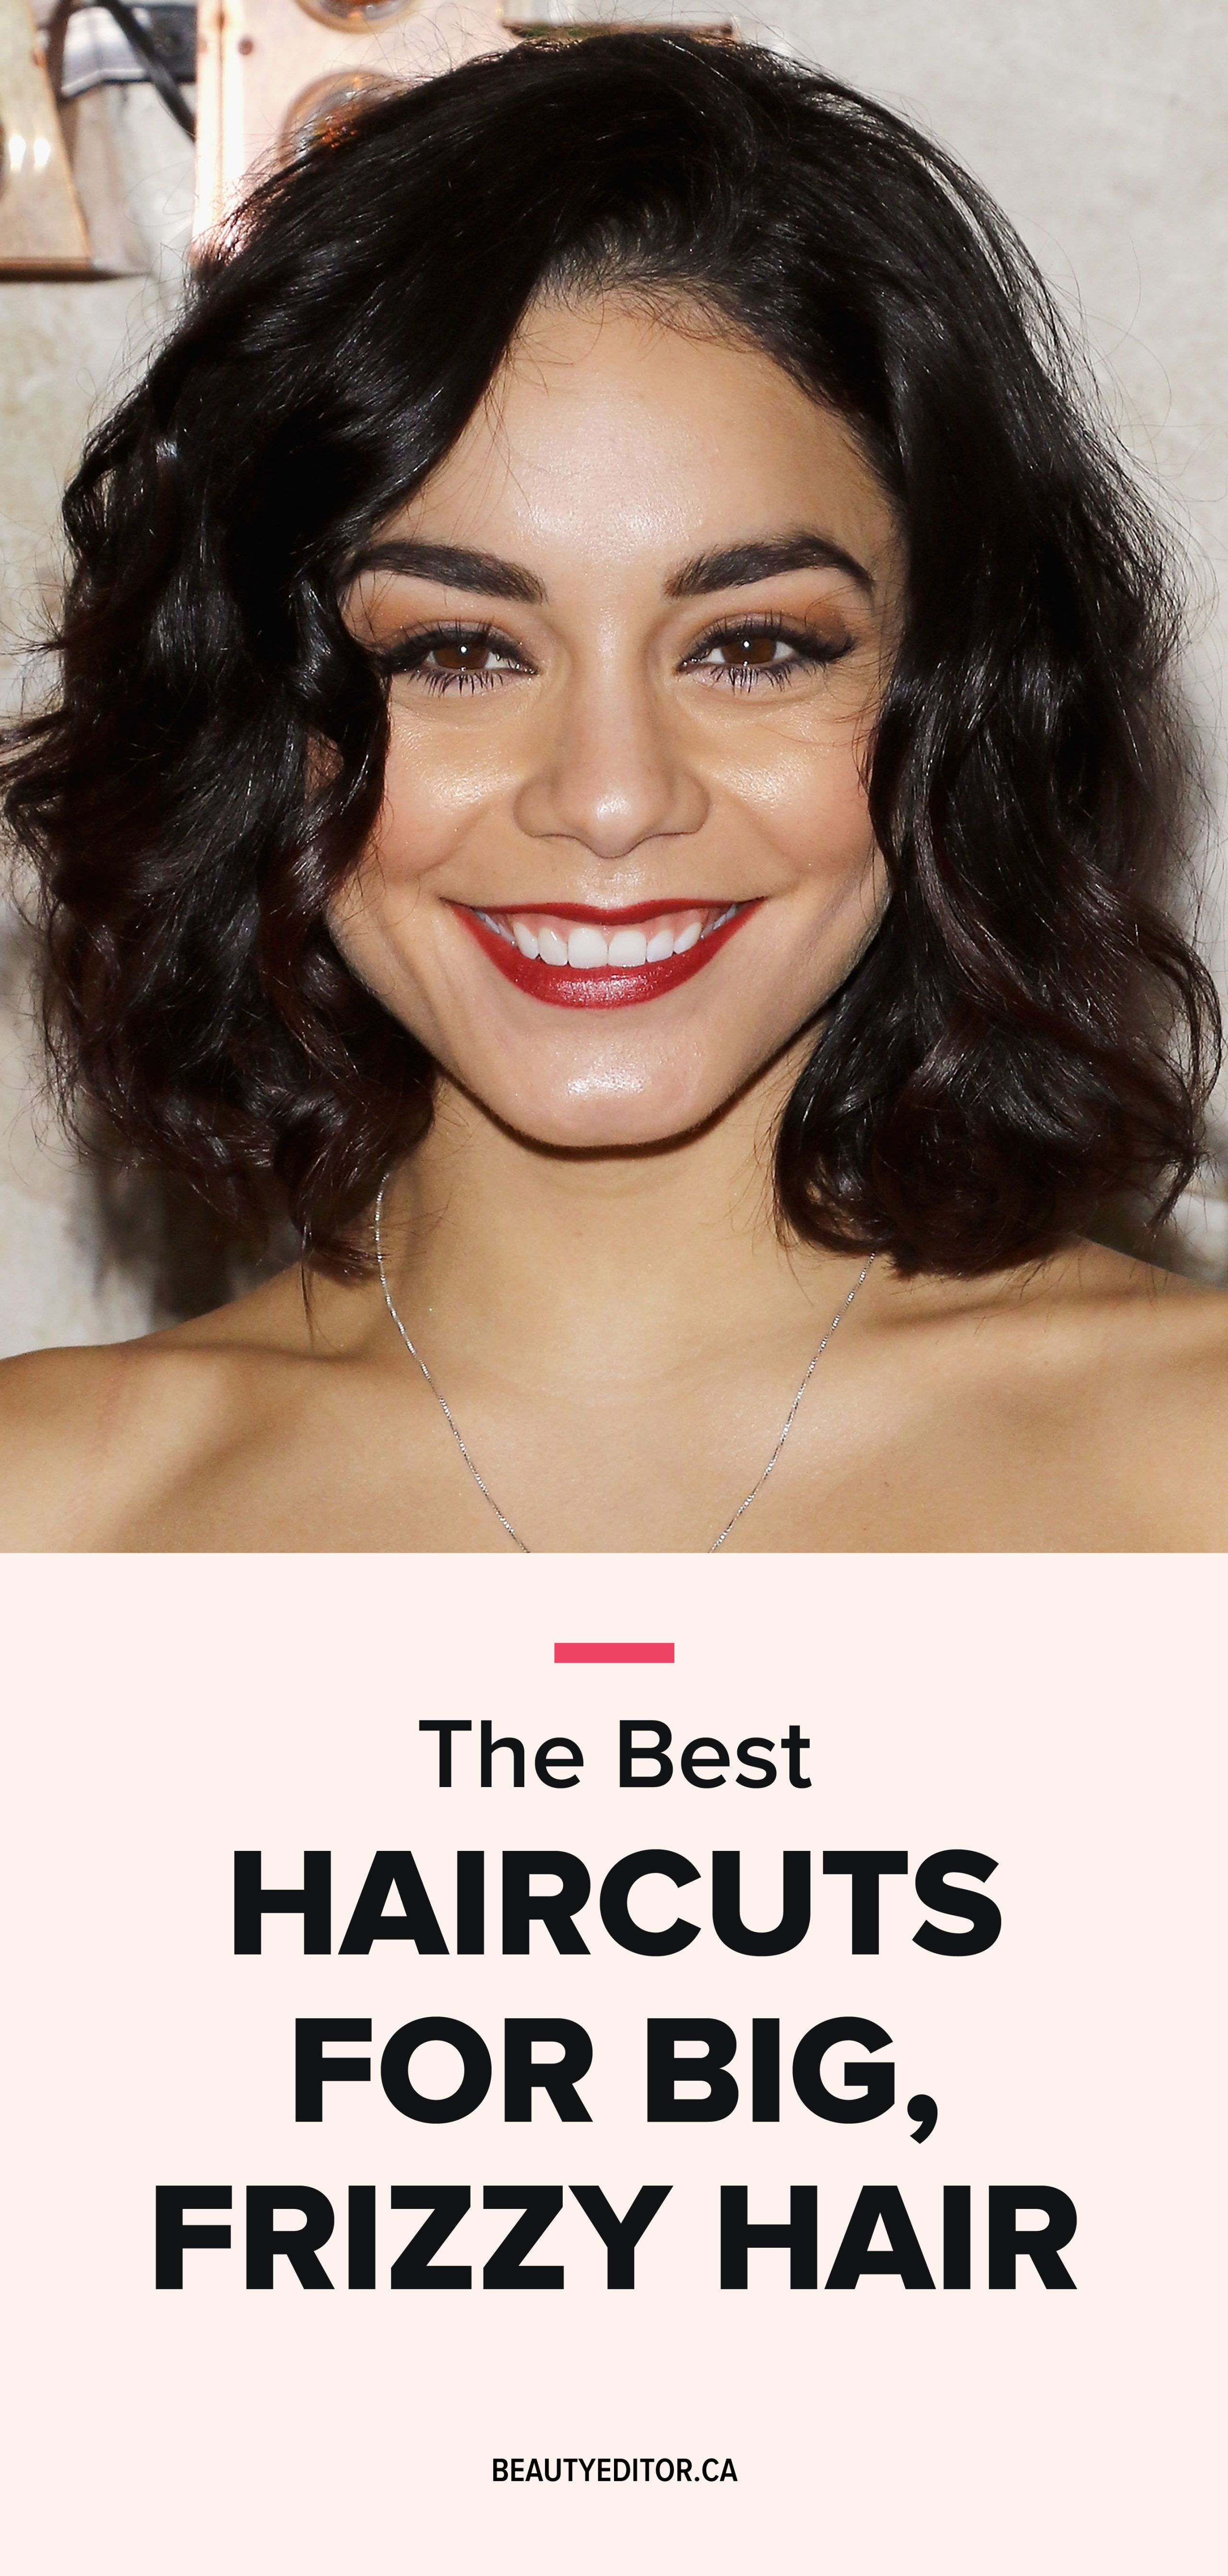 ask a hairstylist: the best haircuts for big, frizzy hair